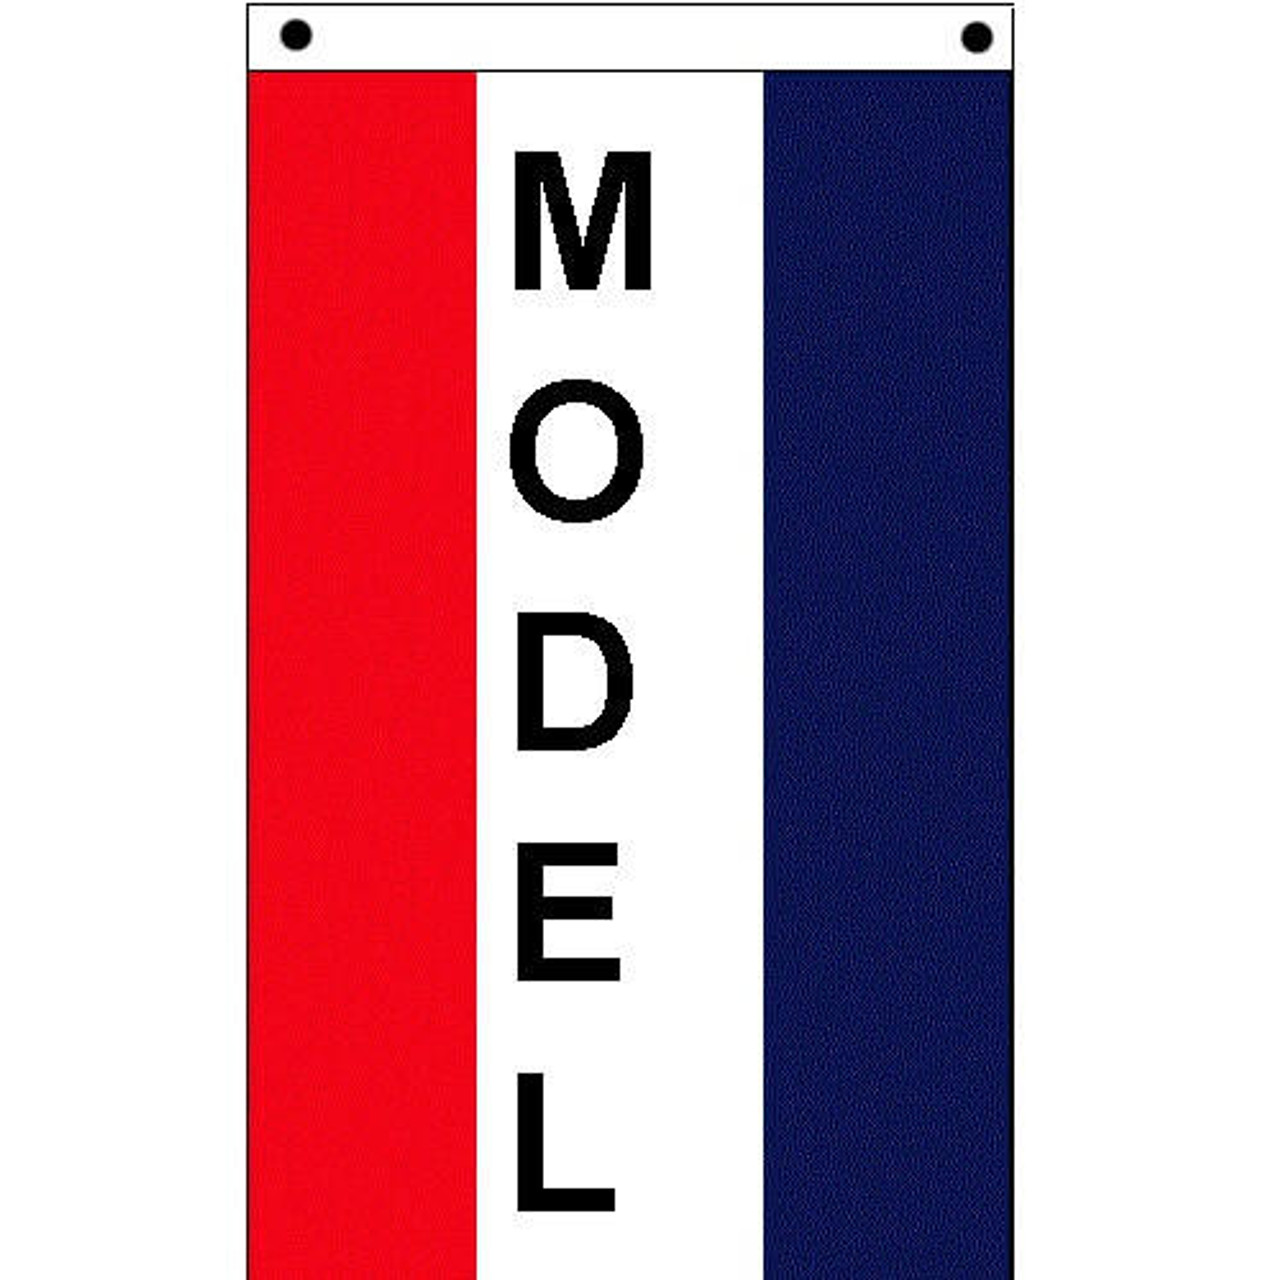 Vertical Model Flag with 3 vertical stripes.  Red, white, and blue vertical stripe with vertical black text that reads 'Model' in white center stripe.